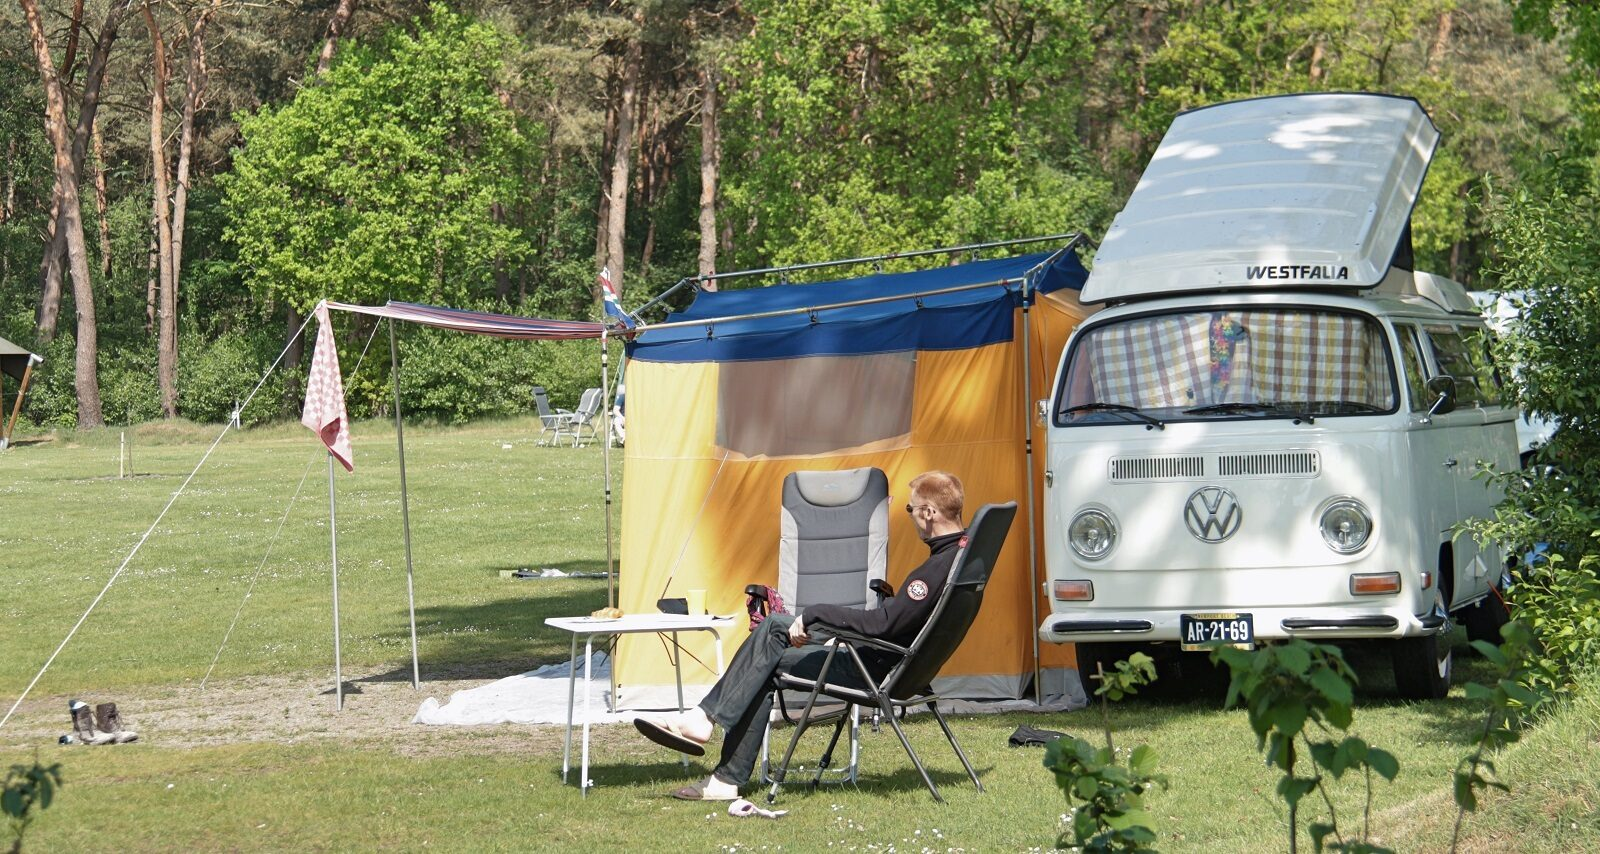 Campercomfortplaats